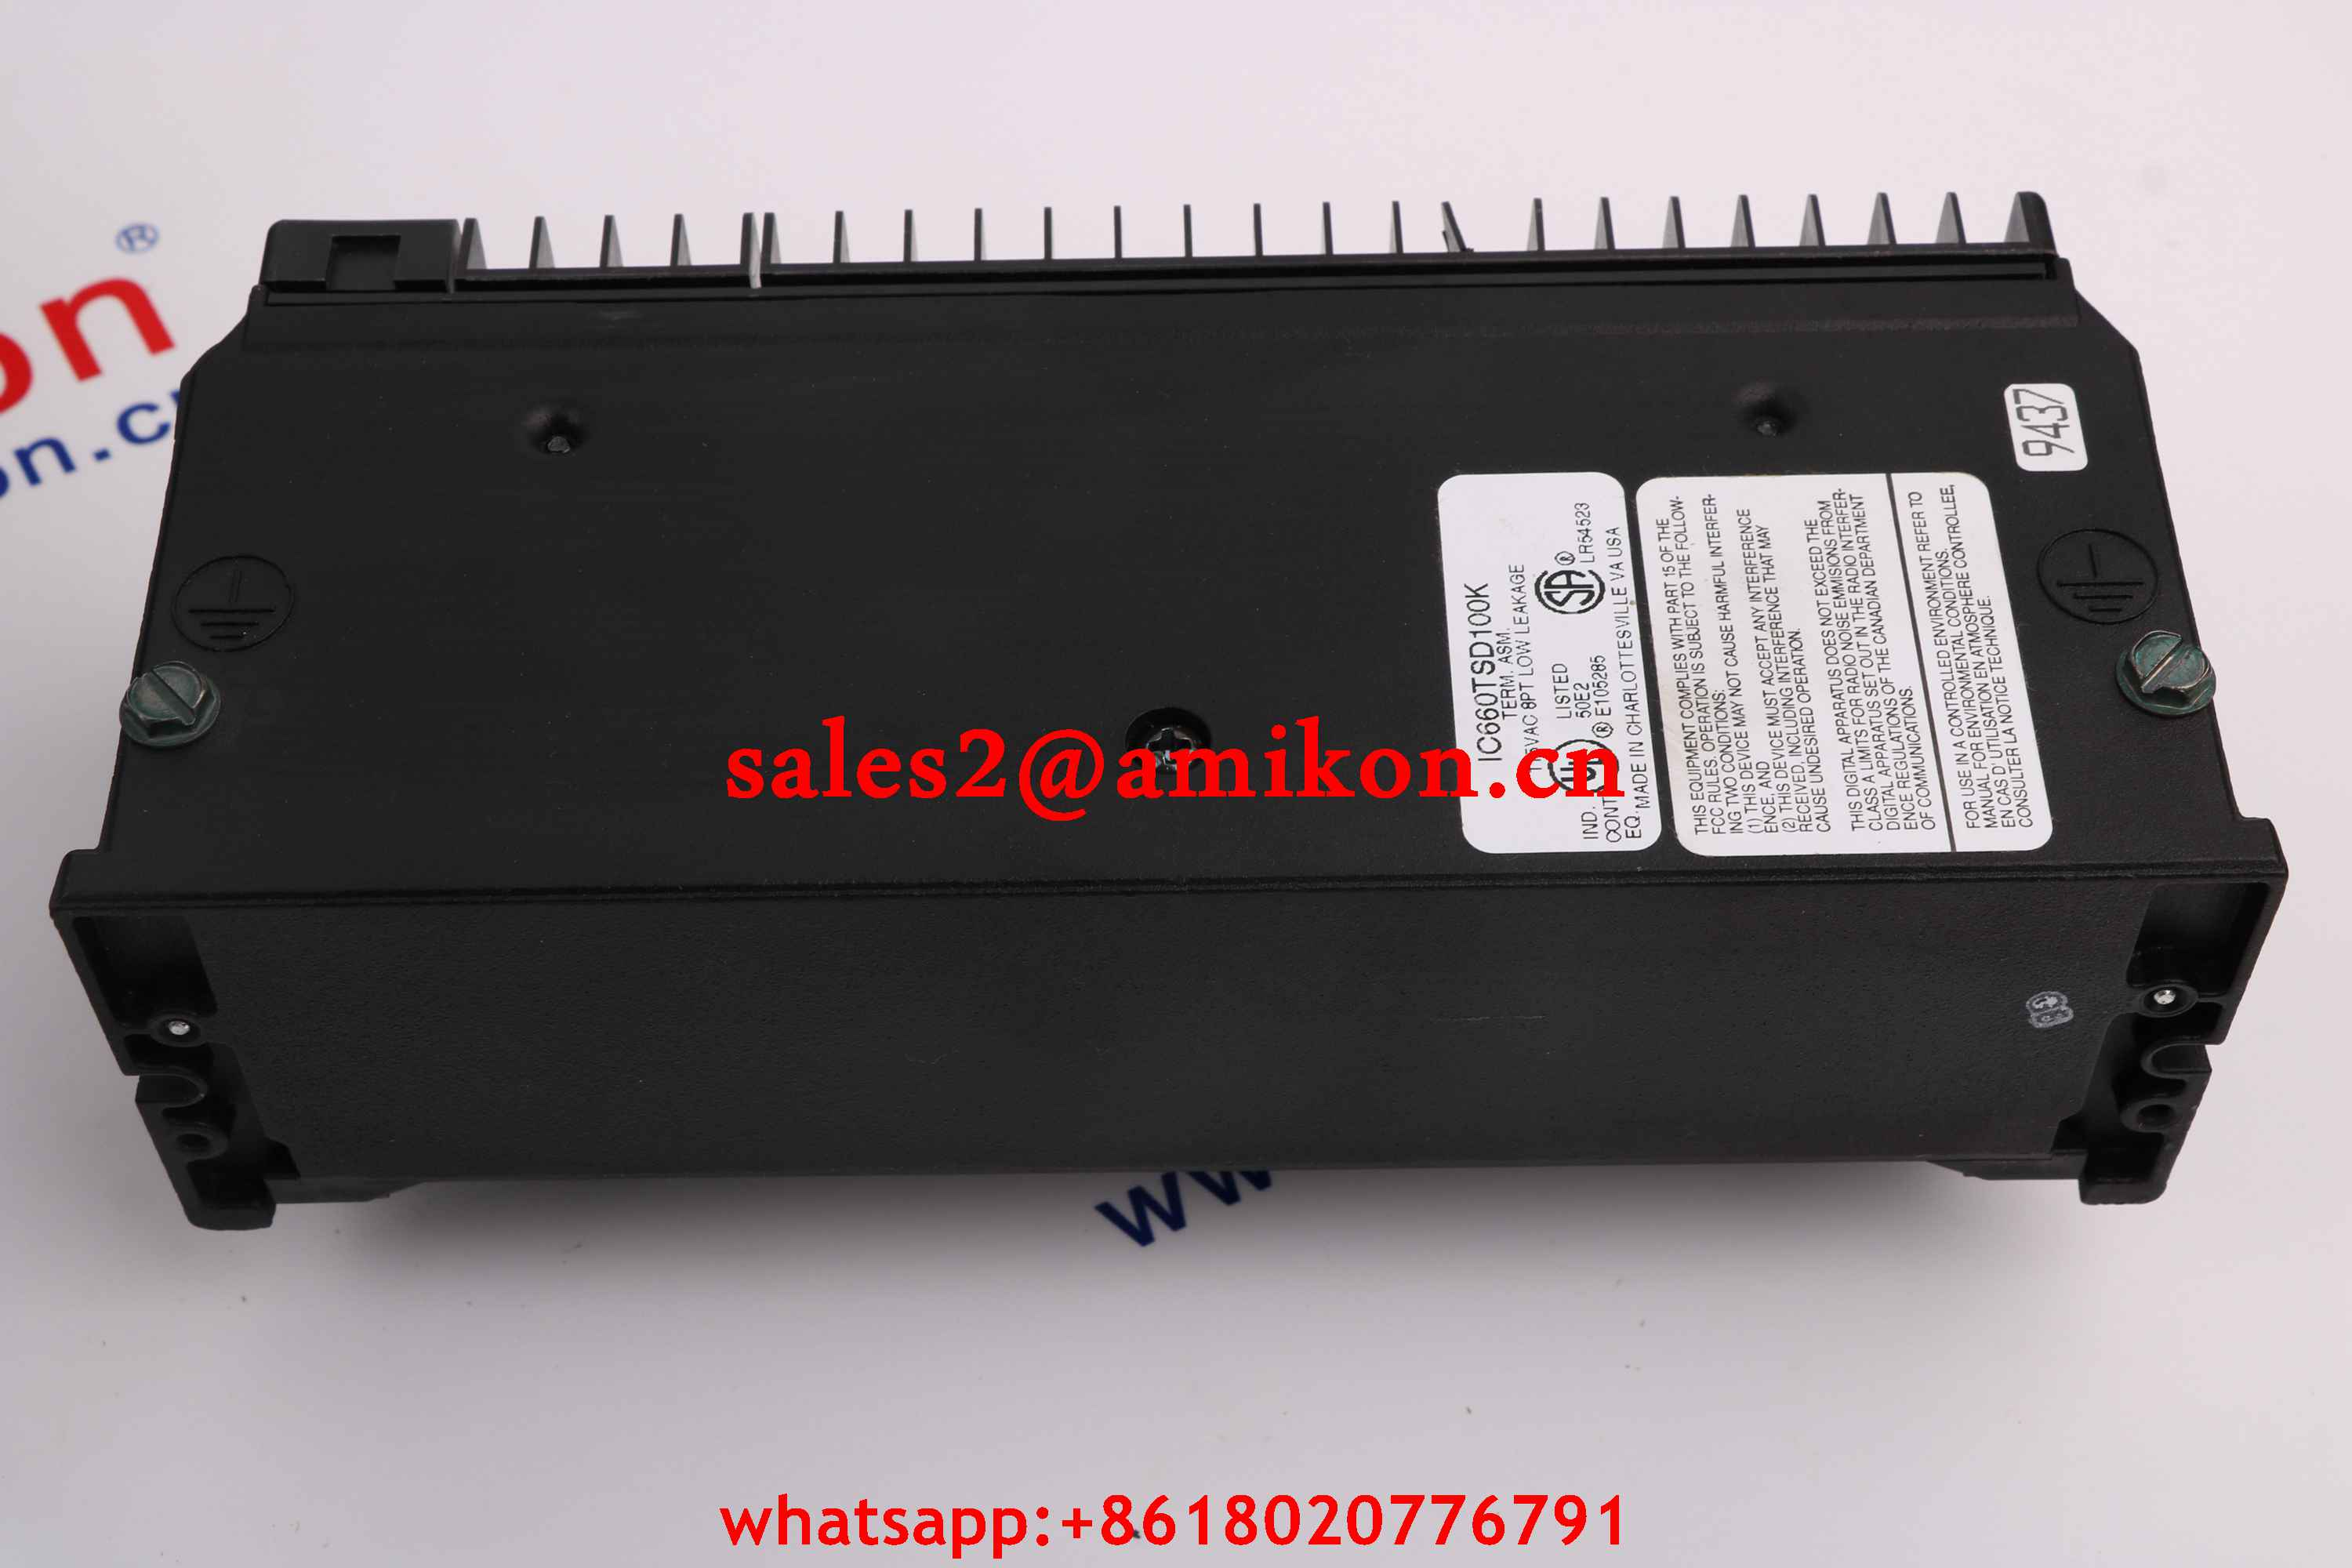 GE FANUC DS3880AIRA new and Original USA 1 year warranty